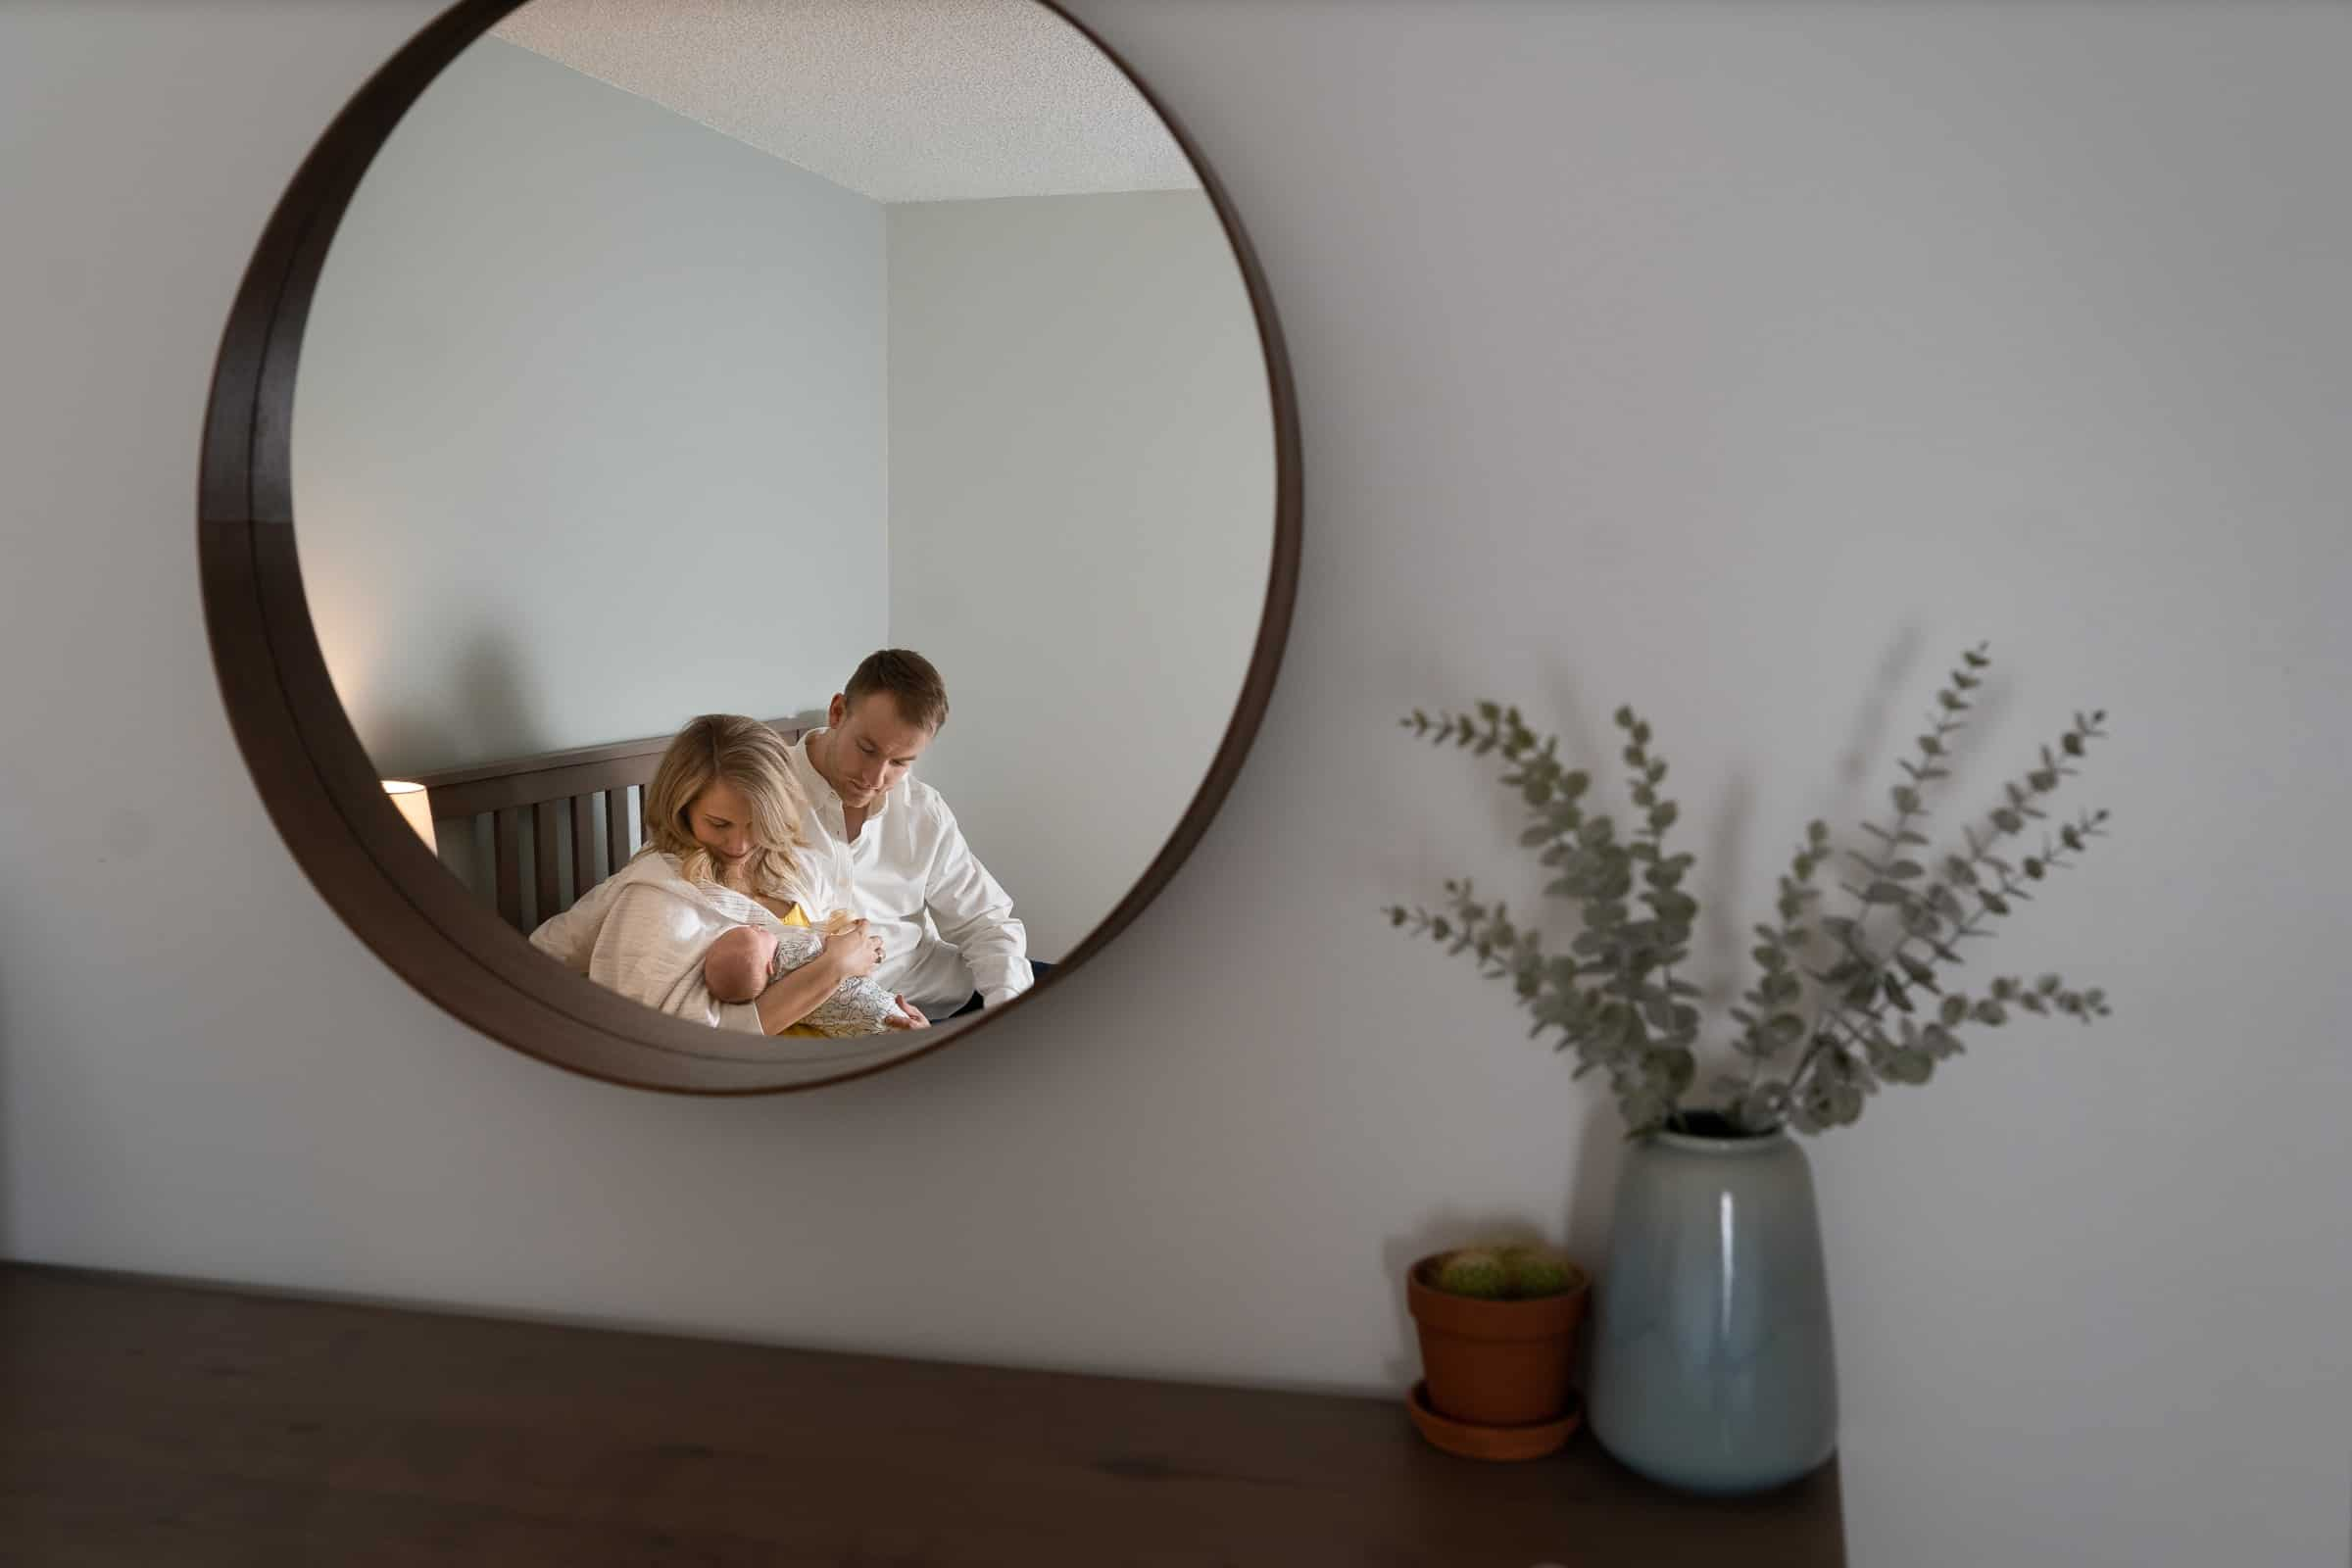 reflection of parents in mirror holding newborn